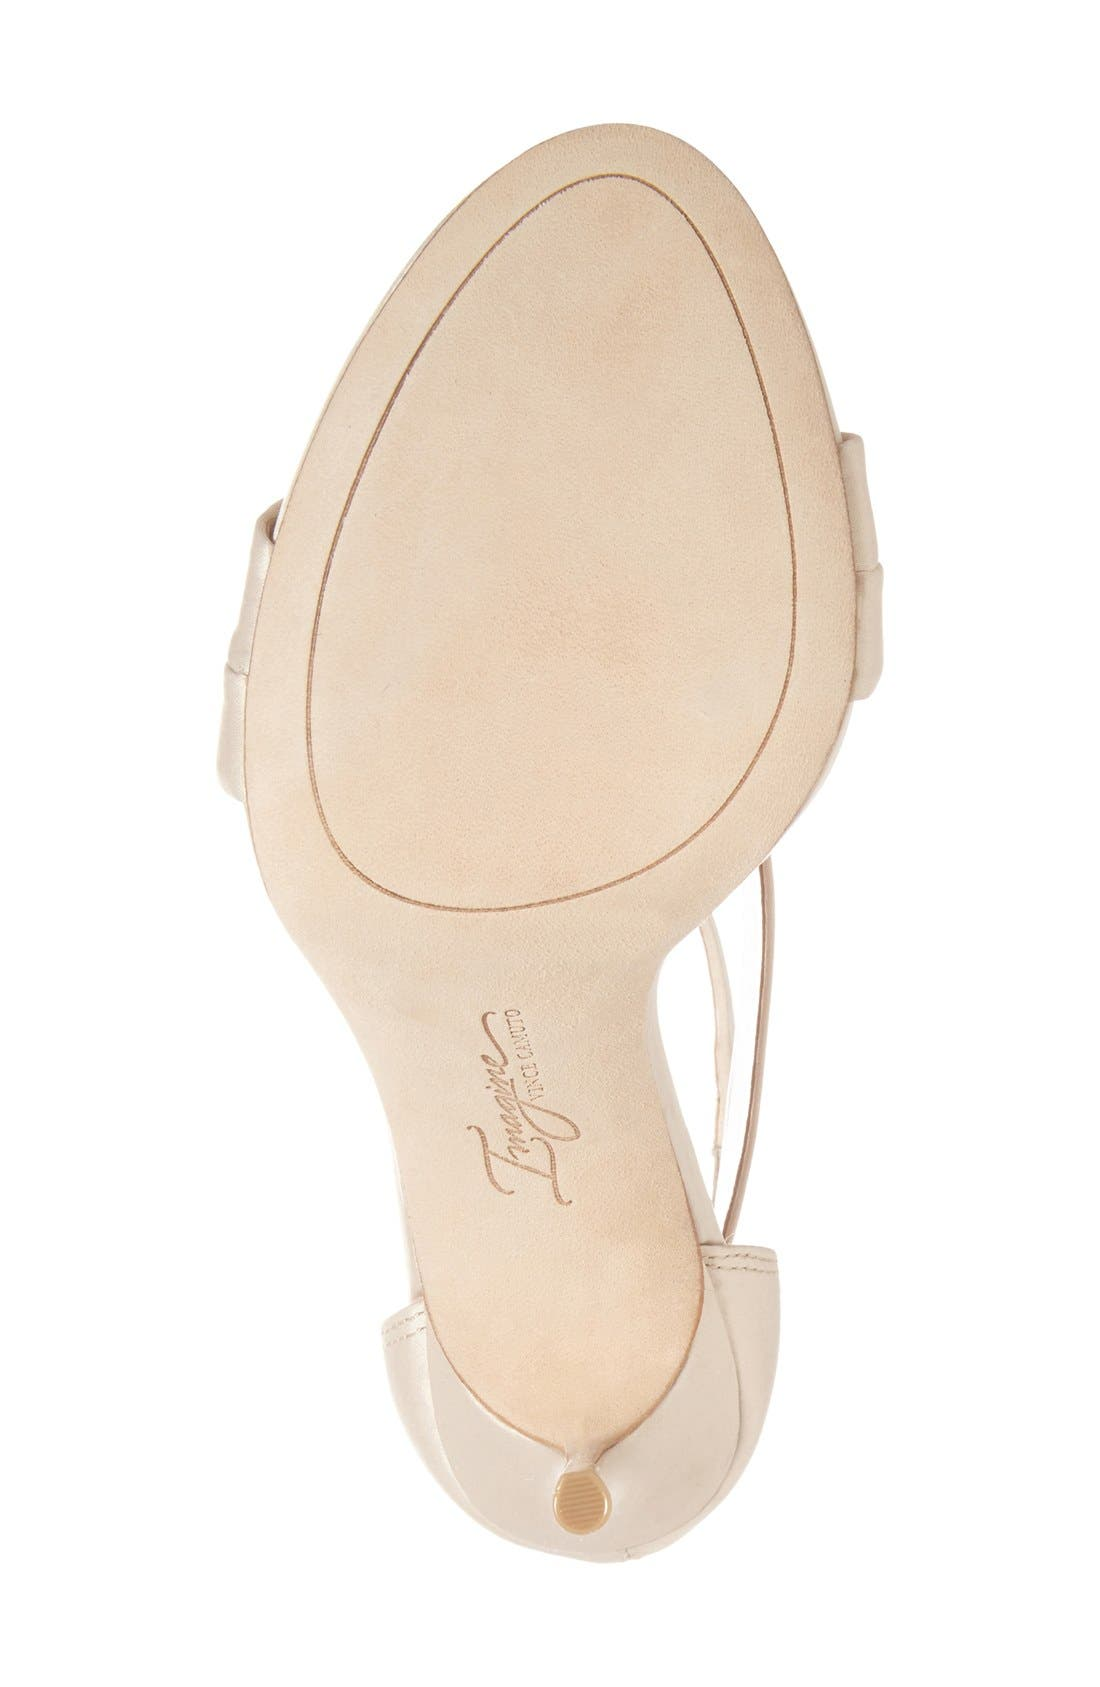 IMAGINE BY VINCE CAMUTO, Imagine Vince Camuto 'Devin' Sandal, Alternate thumbnail 4, color, LIGHT SAND